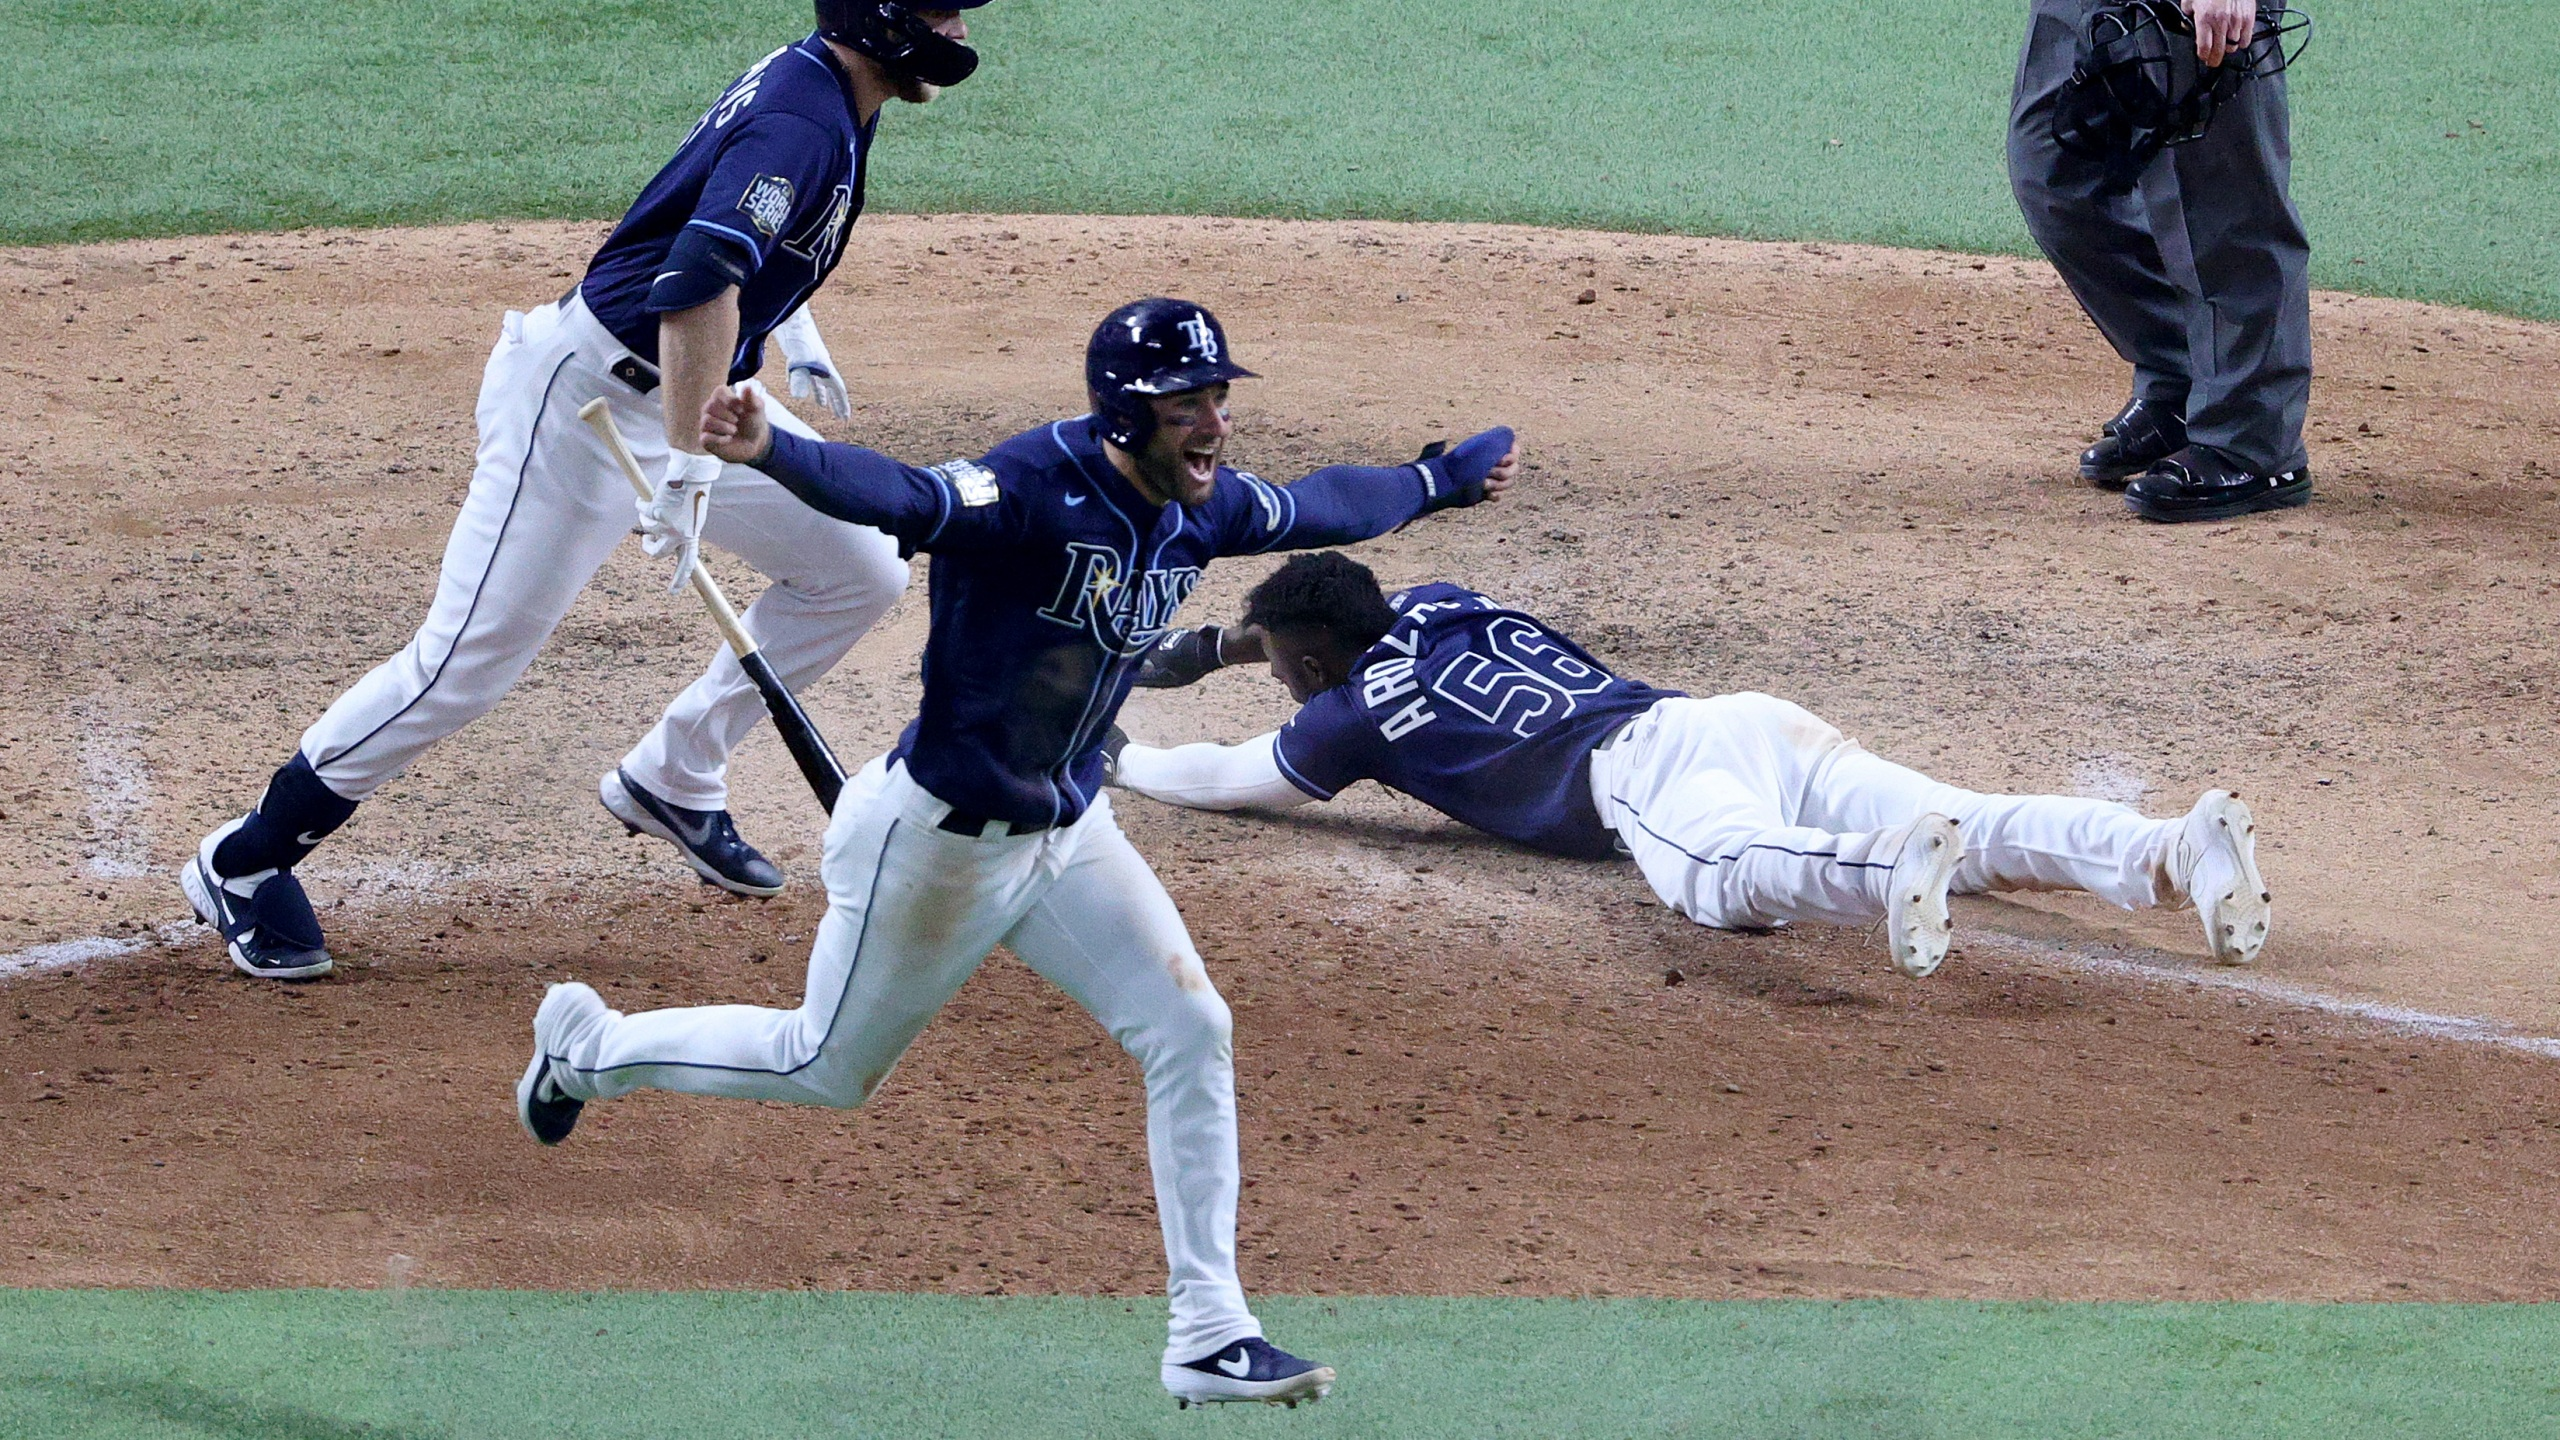 Randy Arozarena #56 of the Tampa Bay Rays slides into home plate during the ninth inning to score the game winning run to give his team the 8-7 victory as Kevin Kiermaier celebrates against the Los Angeles Dodgers in Game Four of the 2020 MLB World Series at Globe Life Field on Oct. 24, 2020, in Arlington, Texas. (Sean M. Haffey/Getty Images)